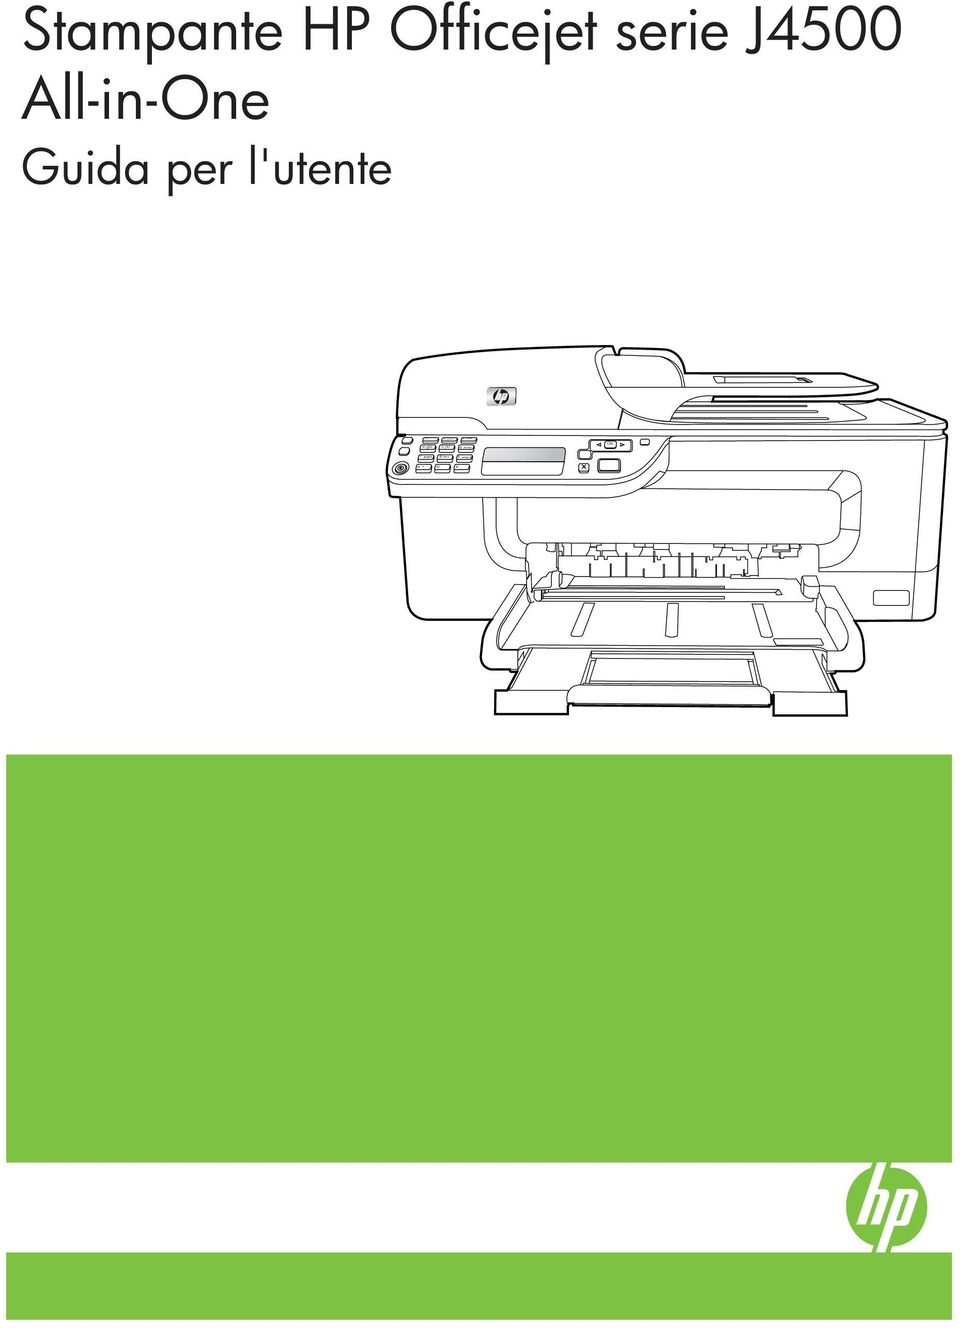 Stampante HP Officejet serie J4500